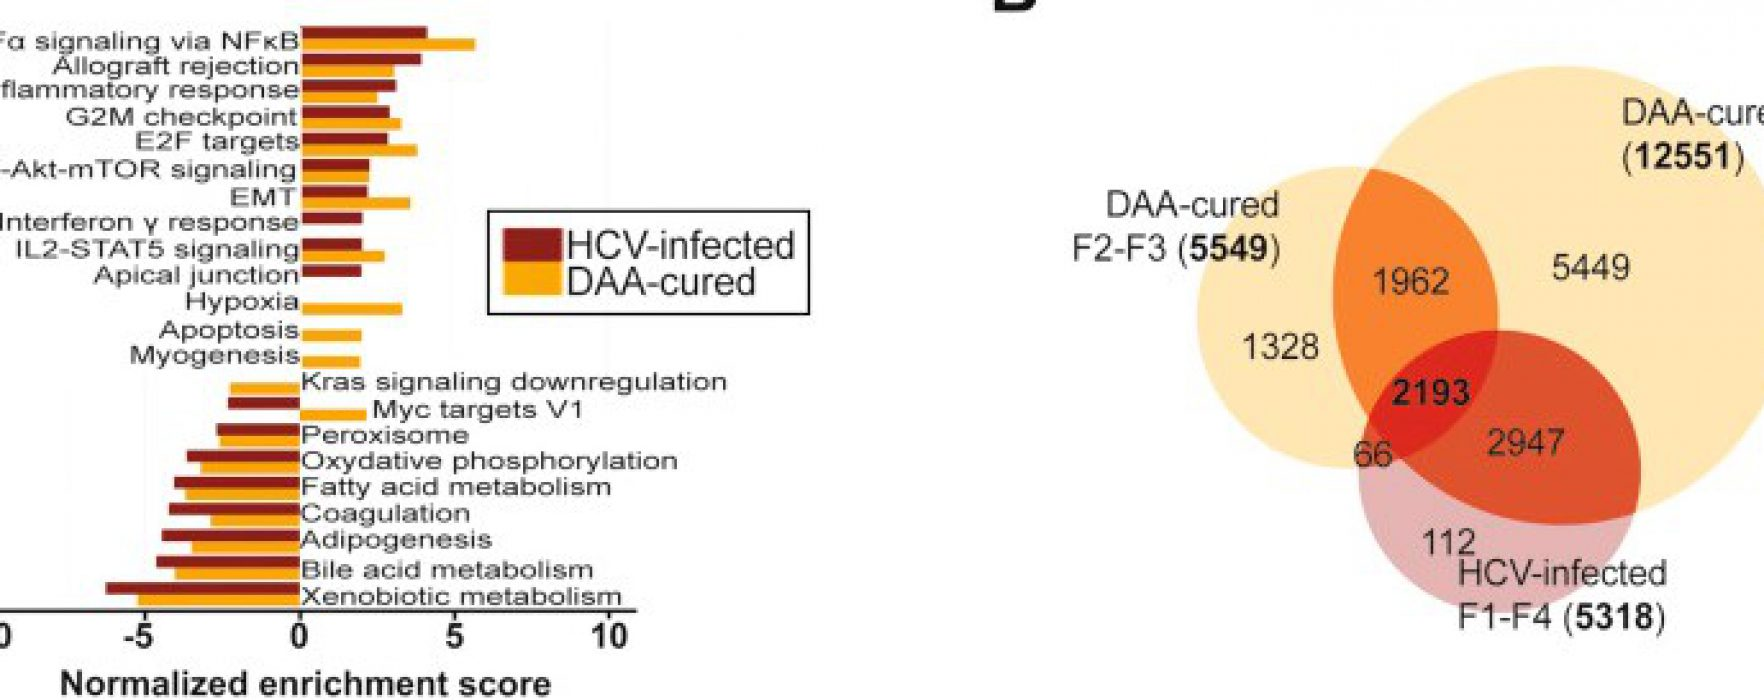 Why Are Patients Cured of HCV Infection Still at Risk for Liver Cancer?